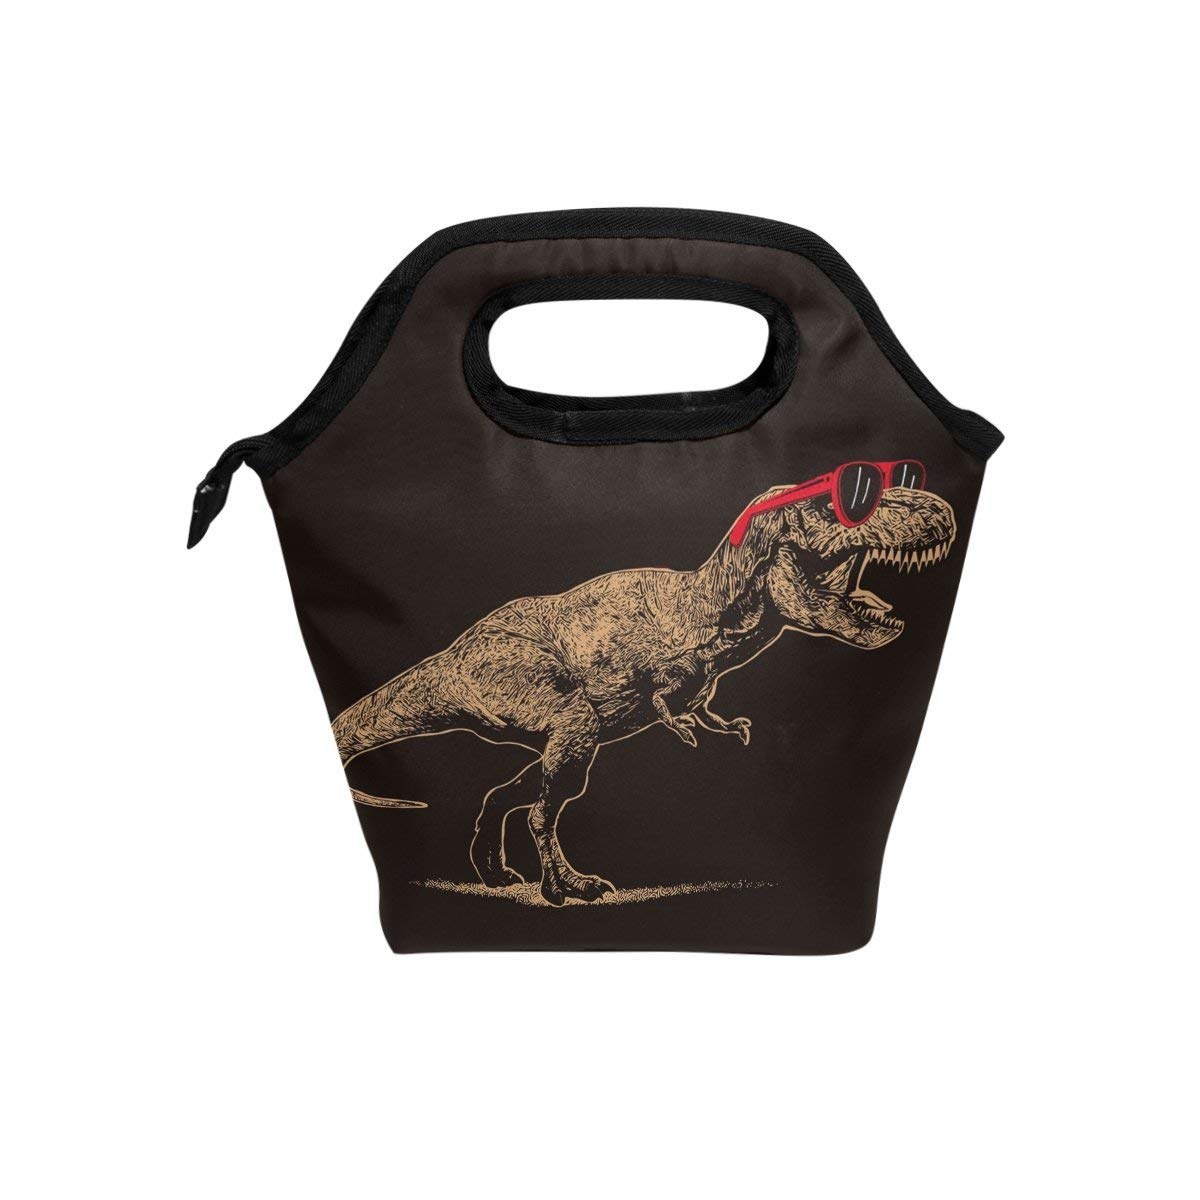 ff5c376ad3f4 Cheap Dinosaur Lunch Bag, find Dinosaur Lunch Bag deals on line at ...